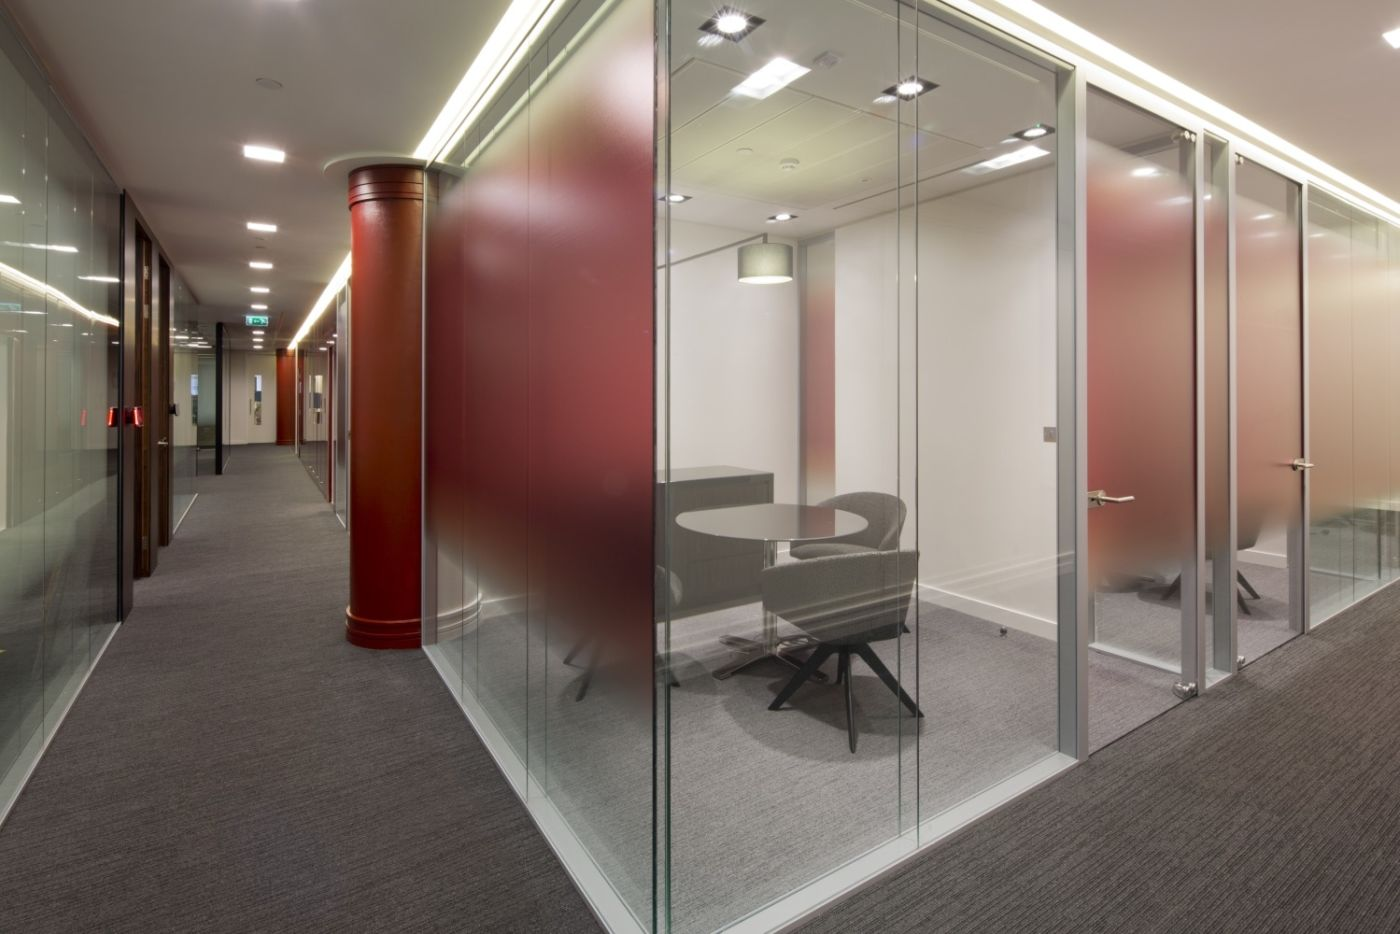 Glass meeting rooms with red highlights